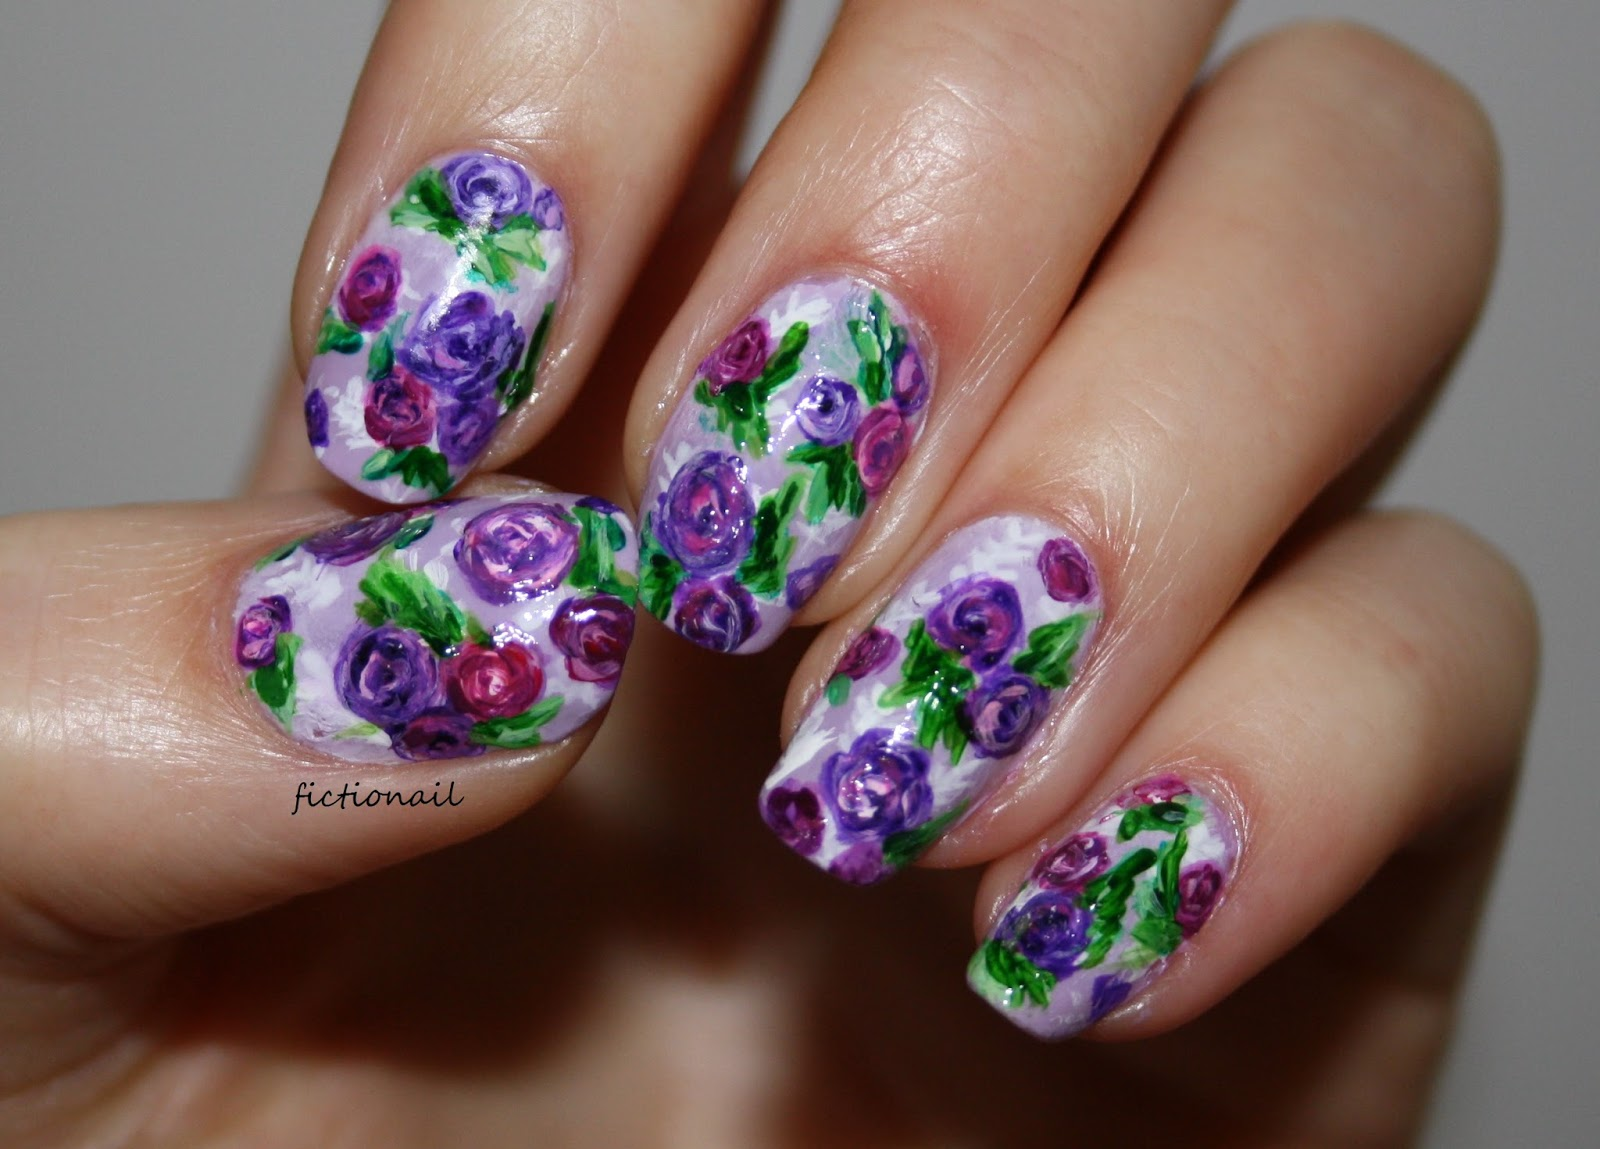 Purple rose nails for cystic fibrosis awareness for some children who suffer with cystic fibrosis they find it easier to call it 65 roses and so roses are the symbol used to raise awareness buycottarizona